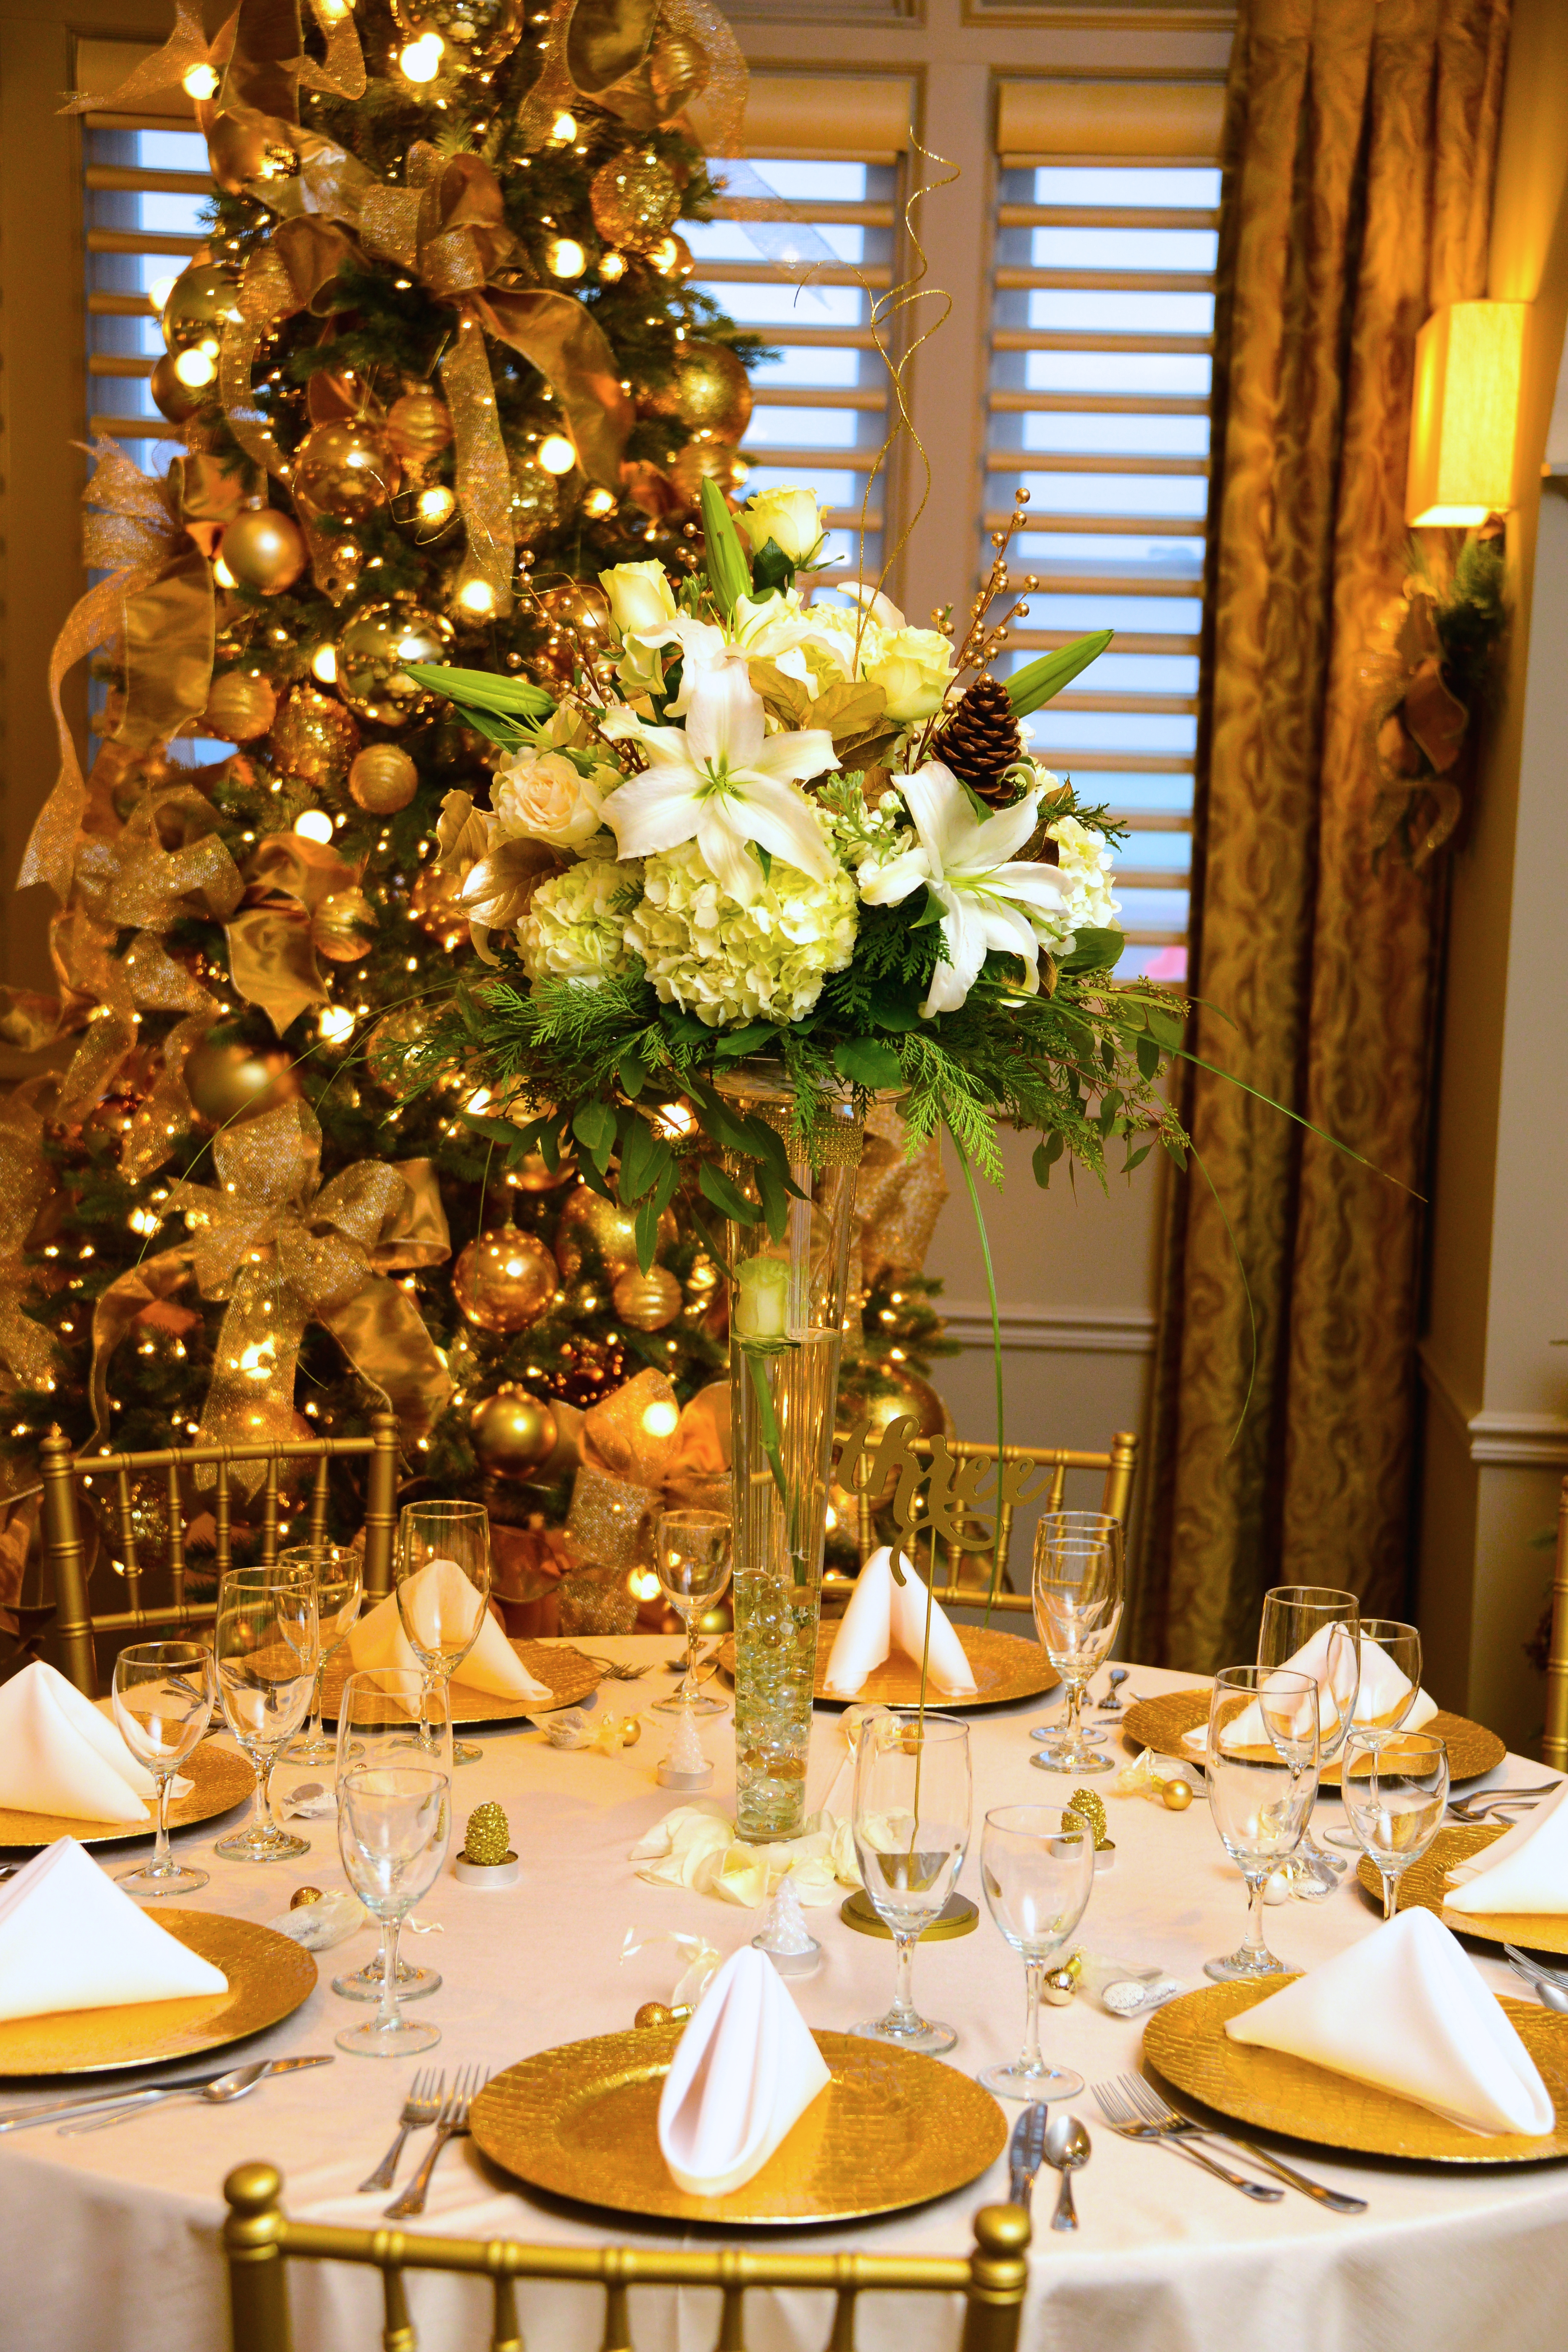 White house christmas decorations book -  Corporate Meetings Non Profit Fundraisers And Family Celebrations For More Information You May Contact Barrington S White House Here